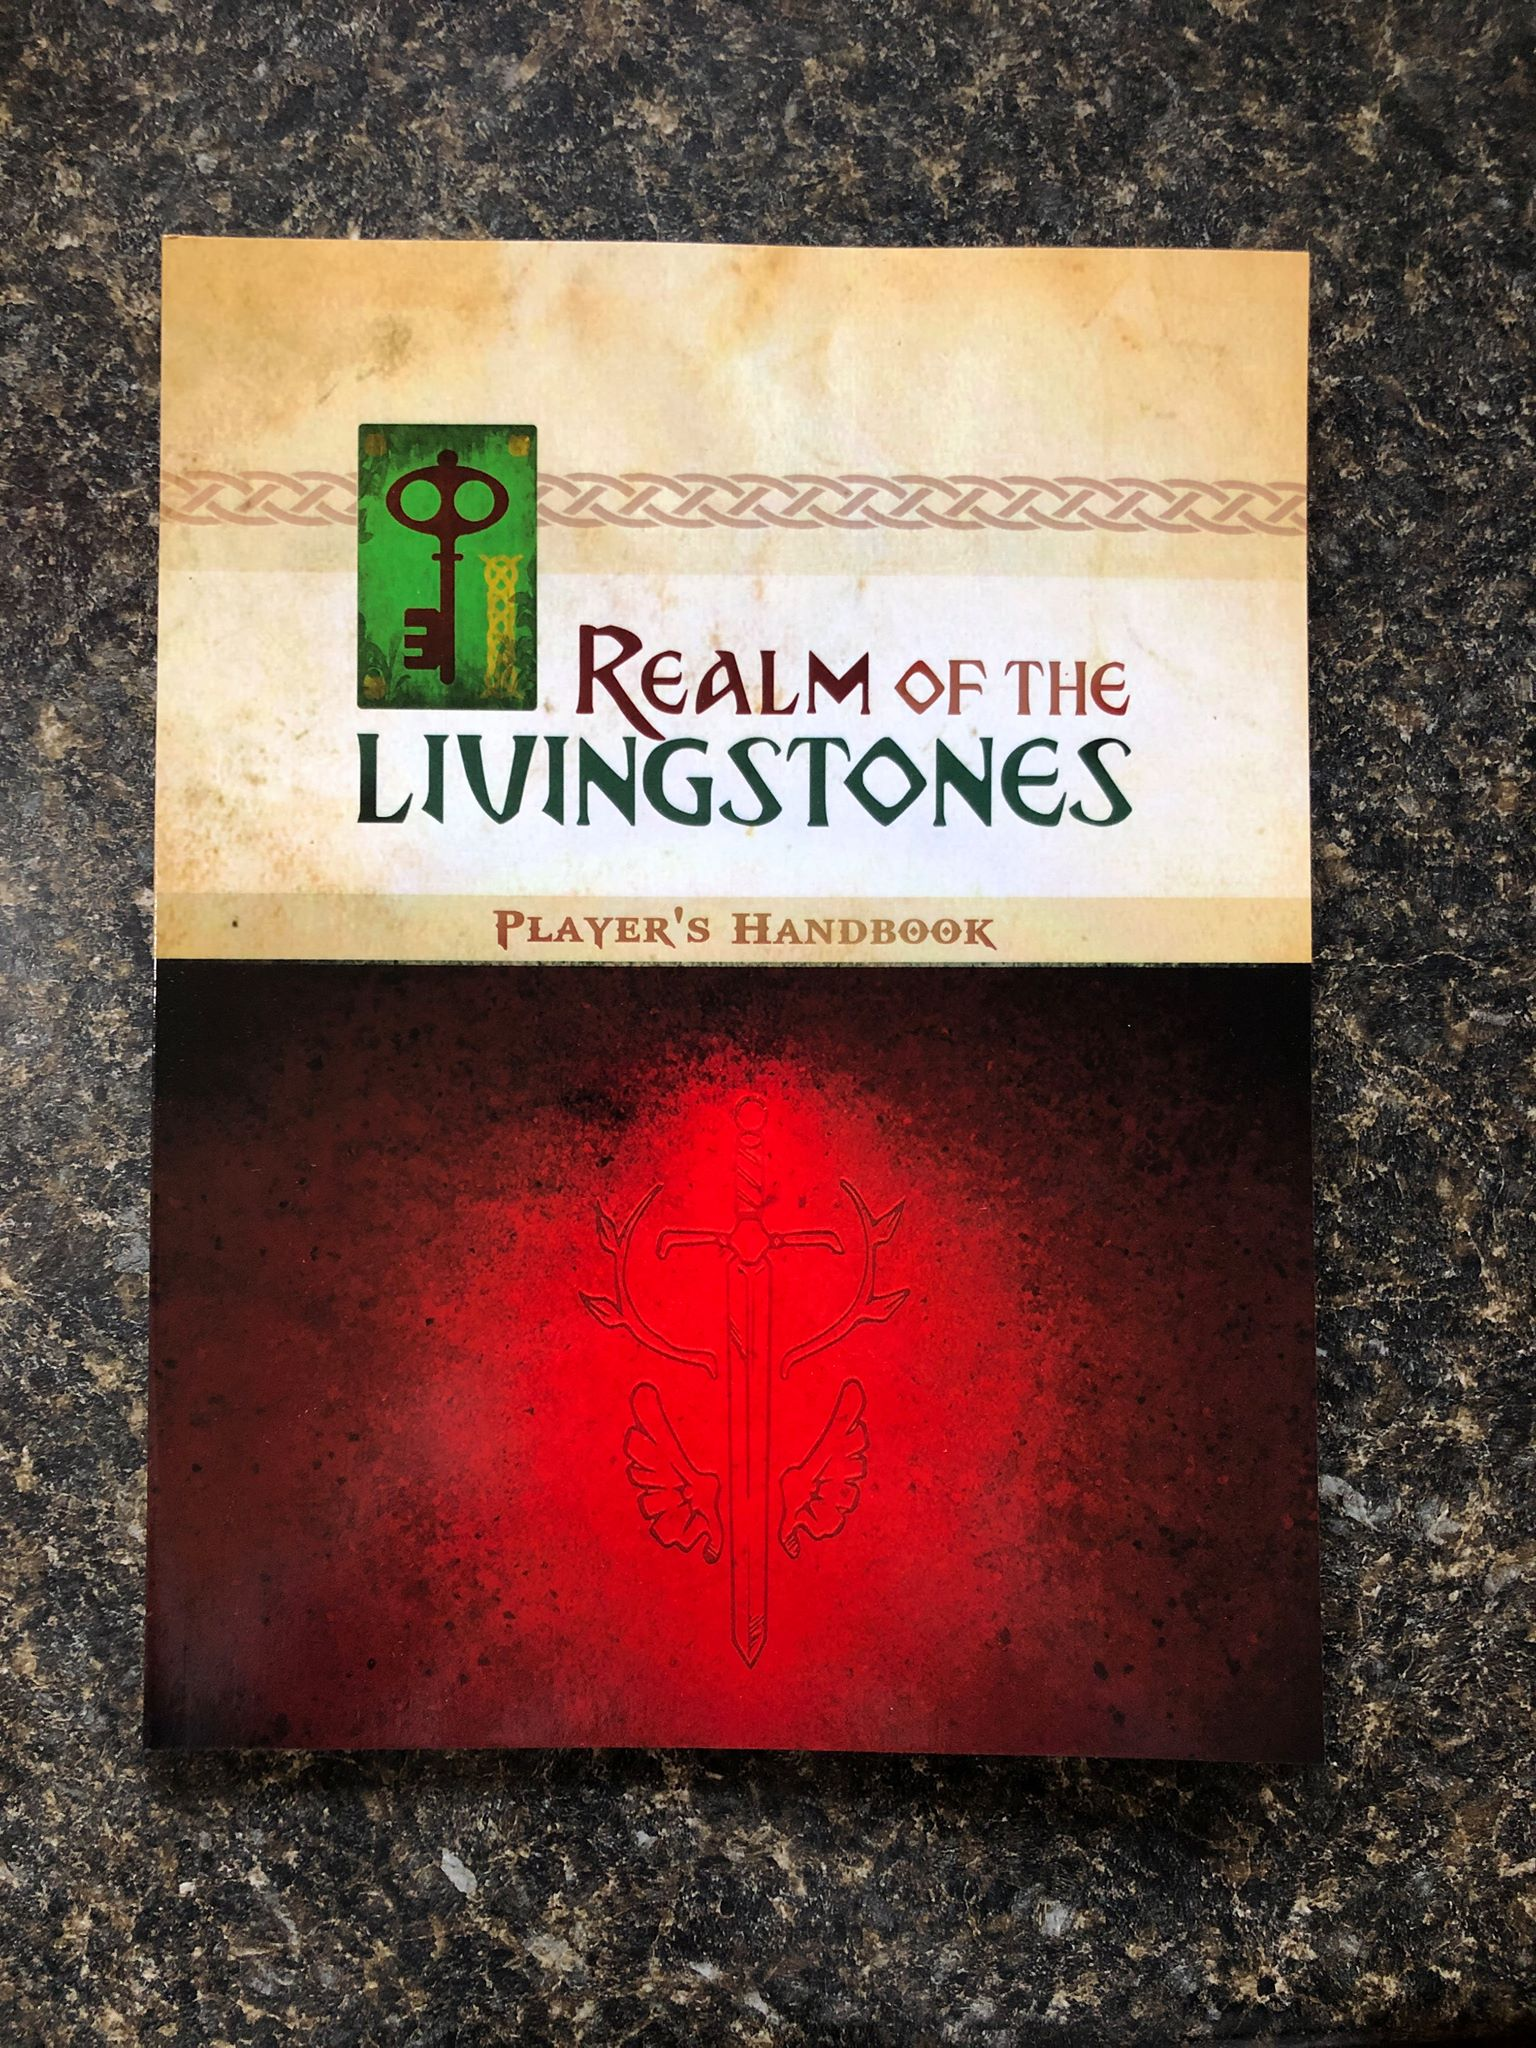 Realm of the Livingstones